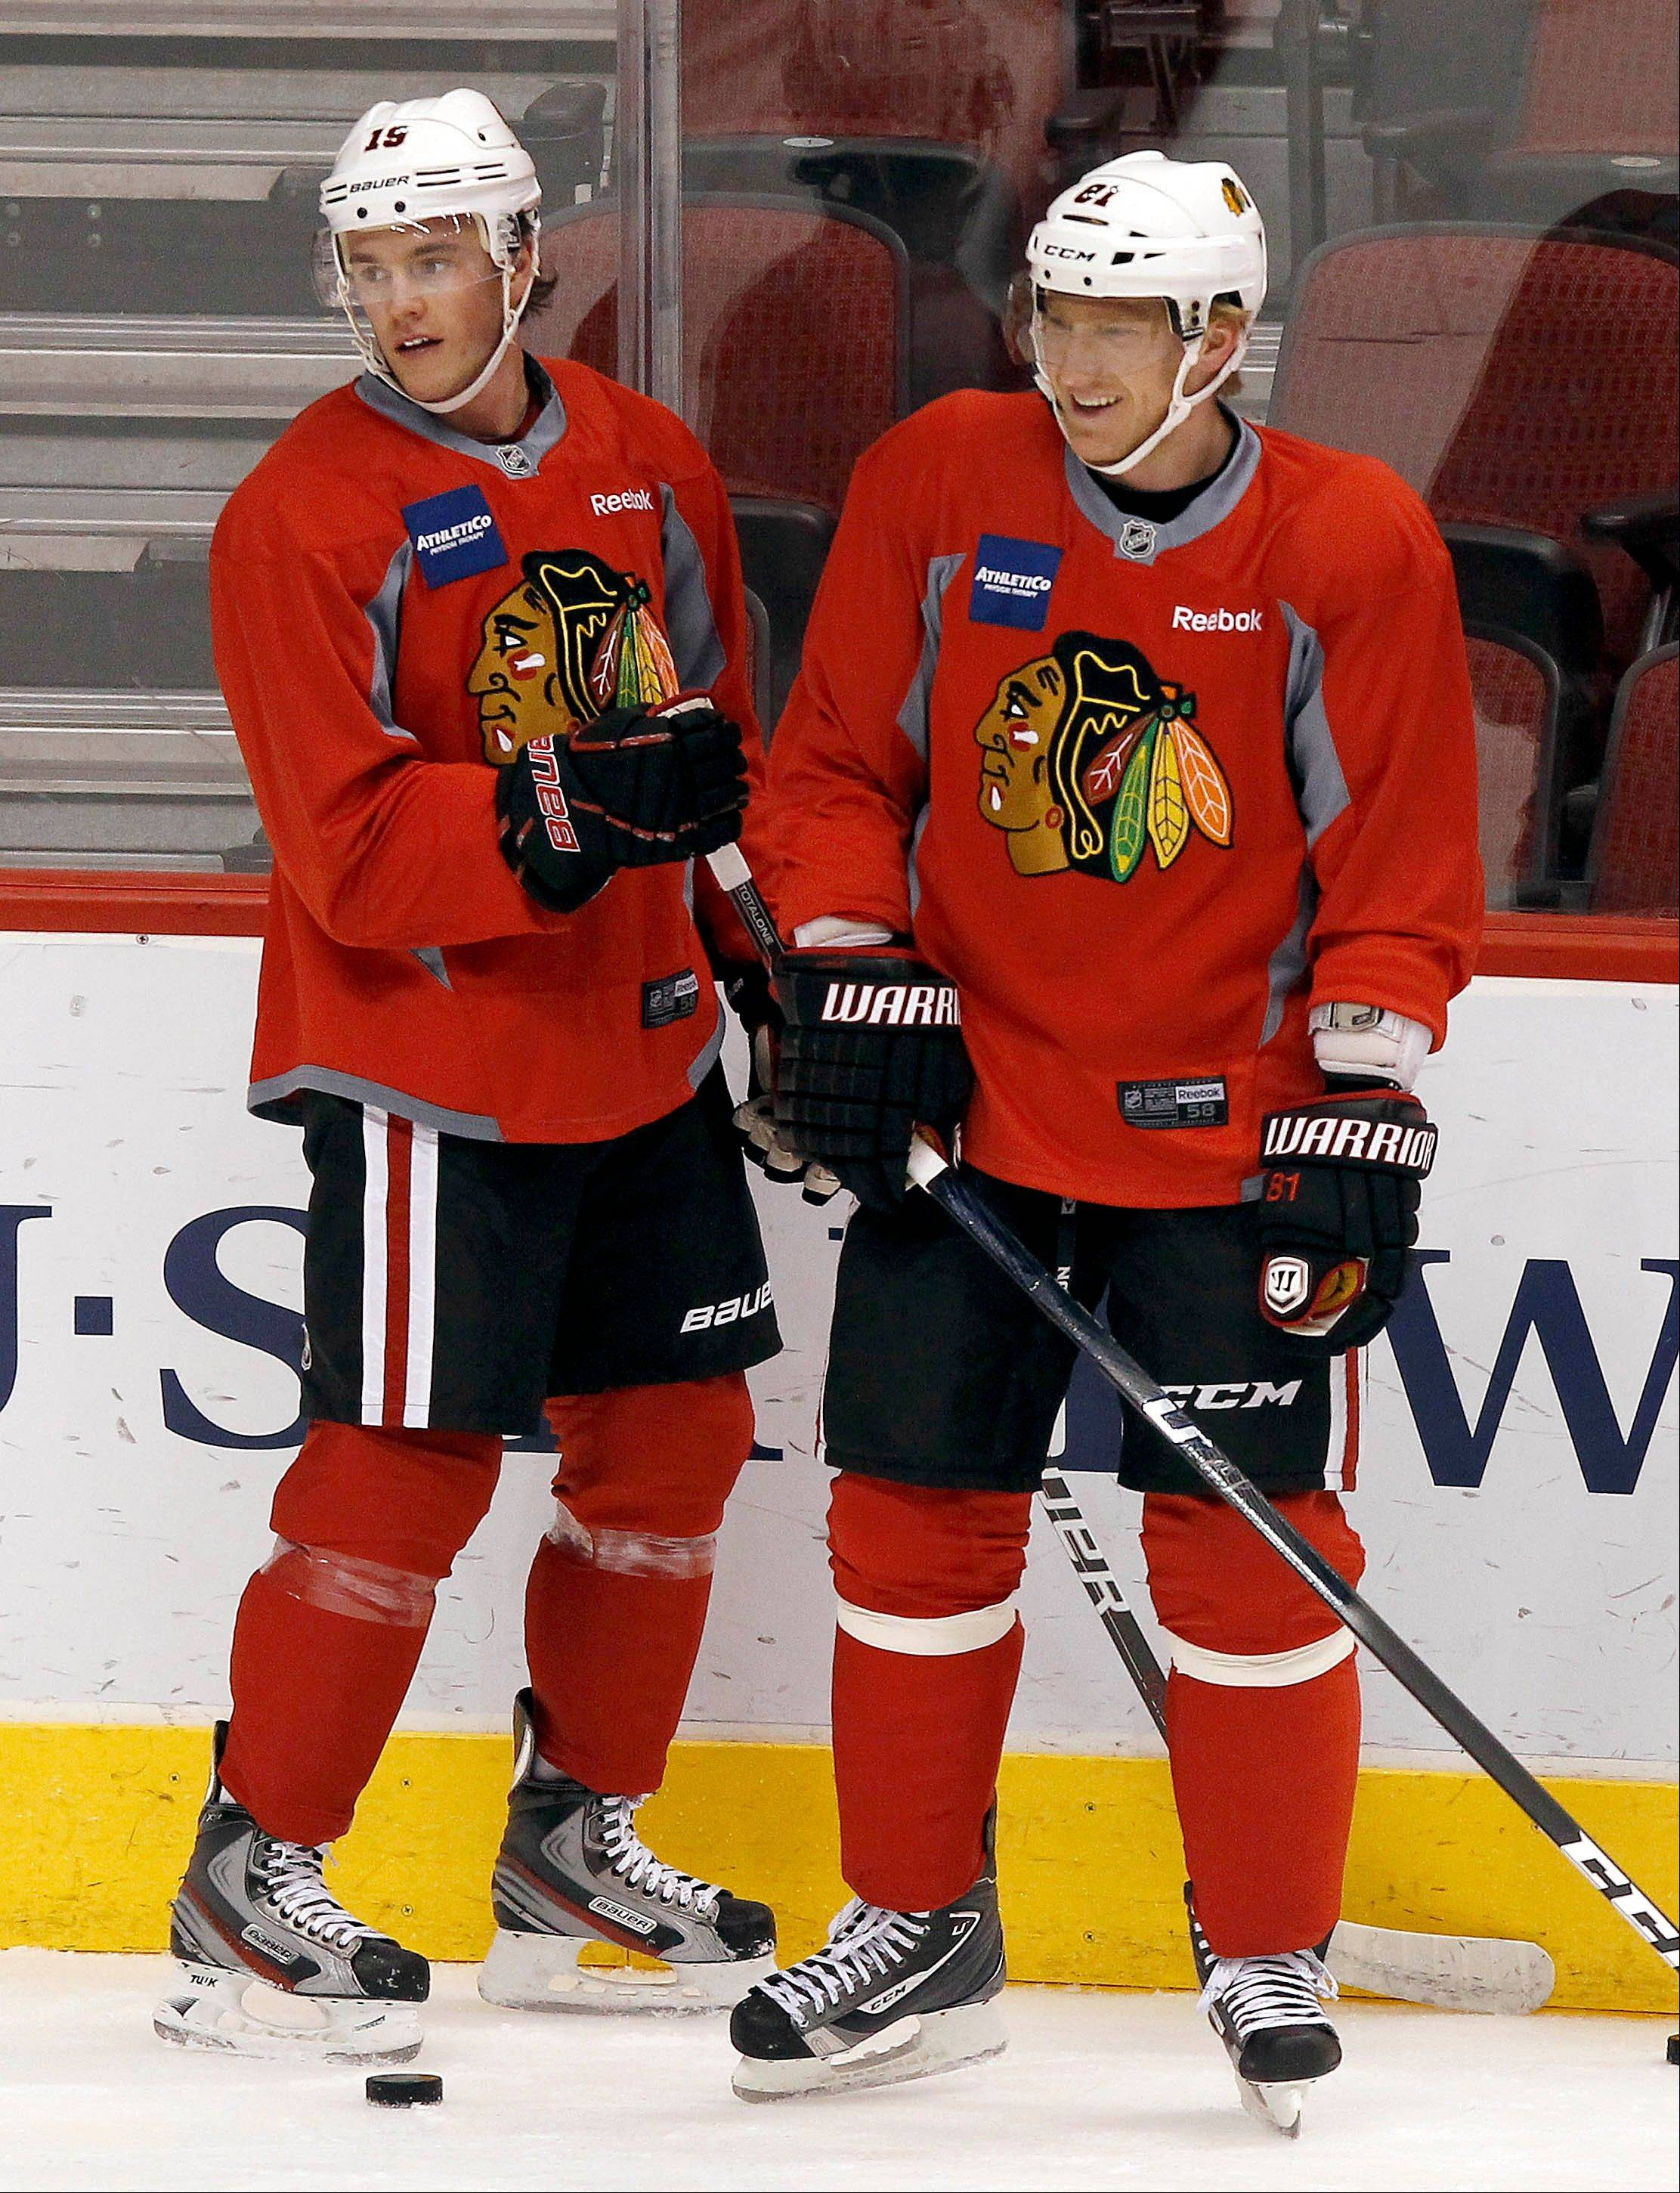 Jonathan Toews (19) and Marian Hossa (81) pause to chat during practice Wednesday in Glendale, Ariz. The Blackhawks and the Phoenix Coyotes are scheduled to play Game 1 of their Western Conference opening-round series Thursday.